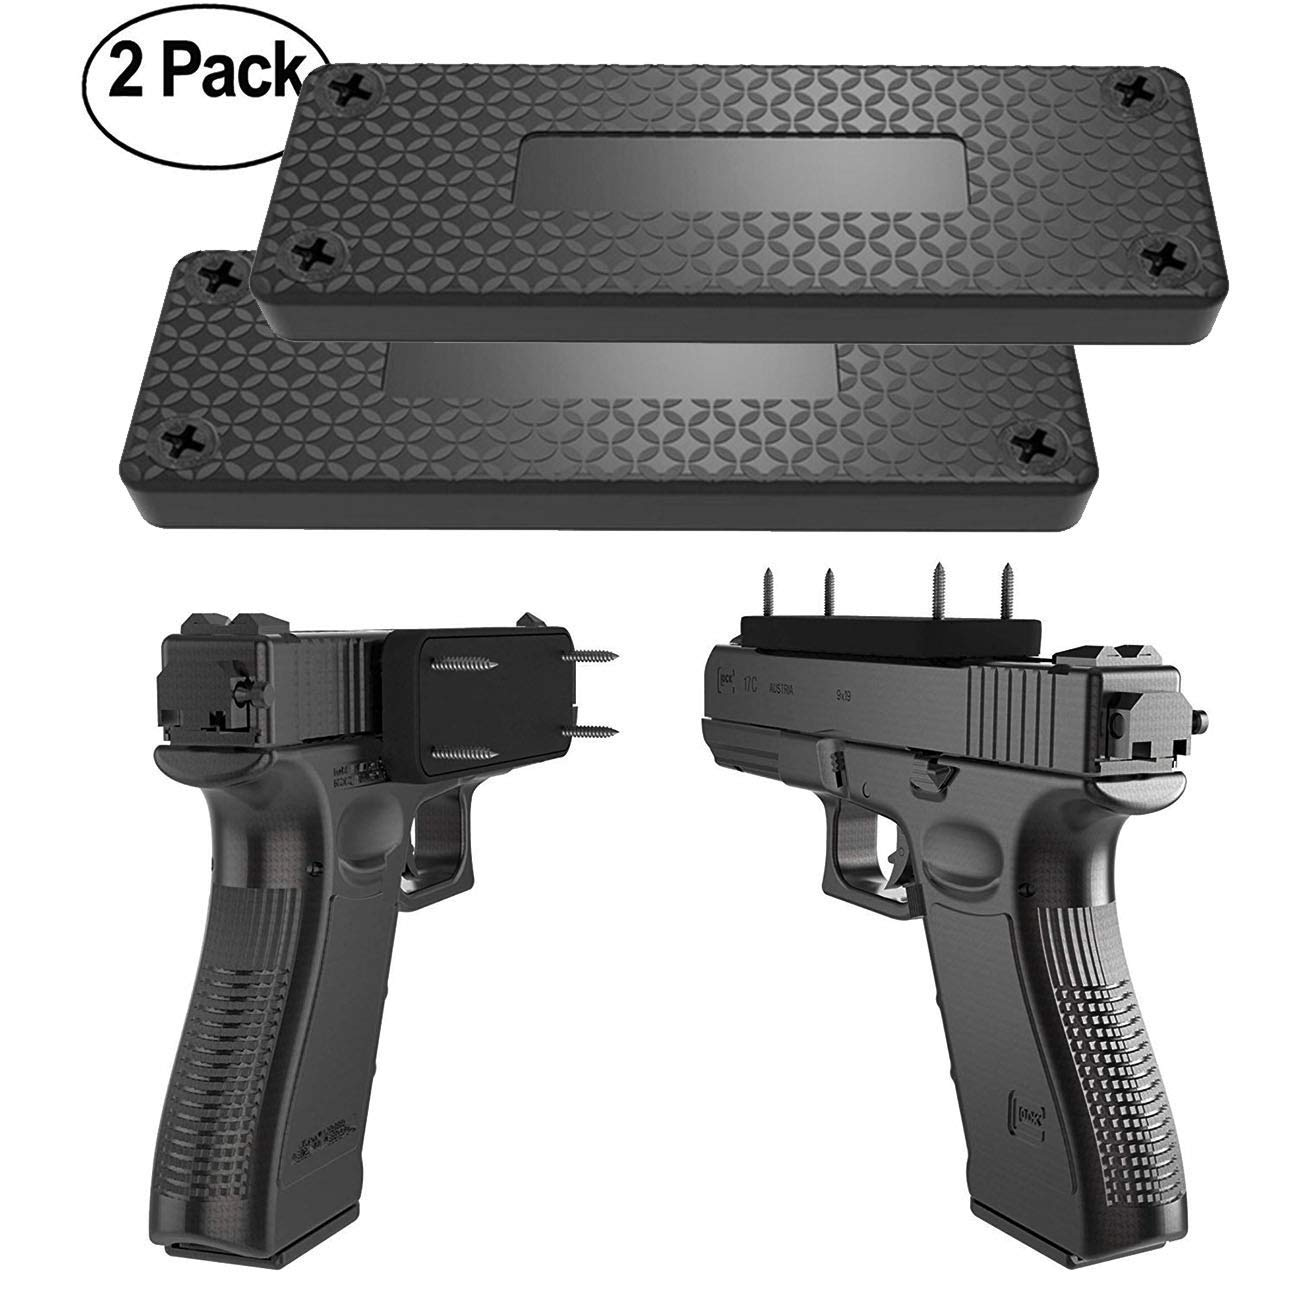 Cheap Pistol Holder For Gun Safe, find Pistol Holder For Gun